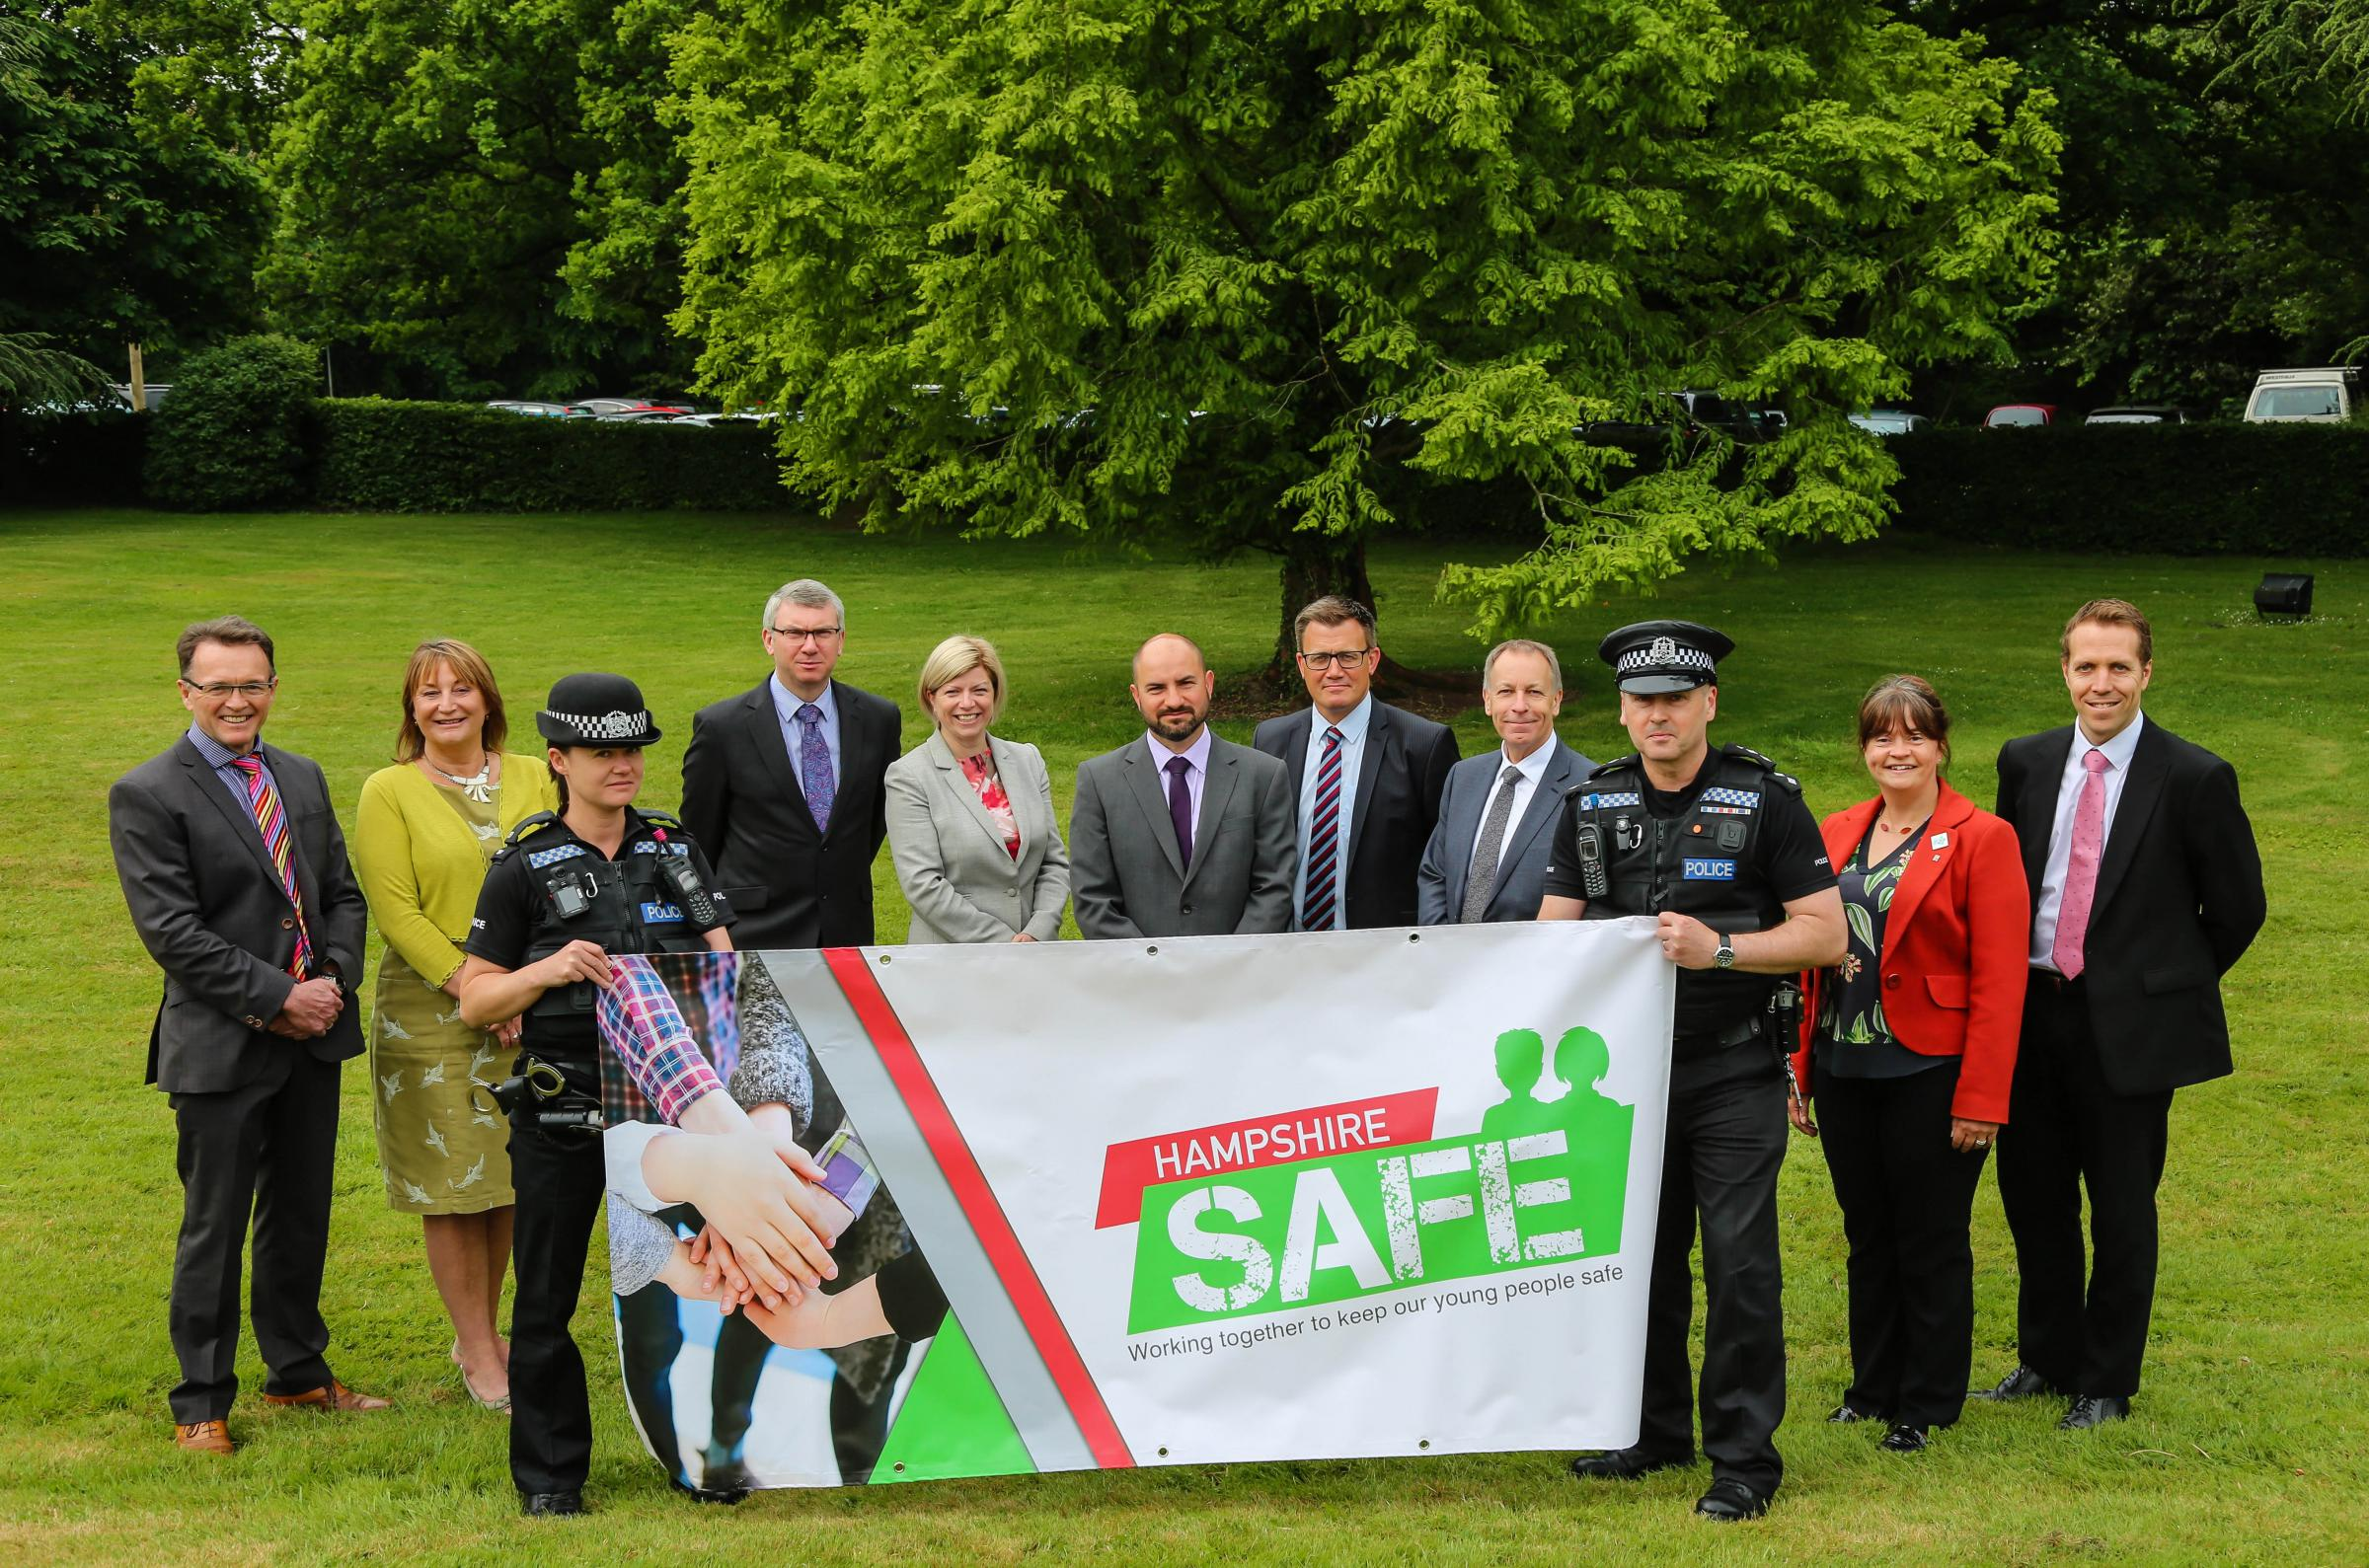 New Forest schools and colleges together with Hampshire Police combine to launch Hampshire Safe.